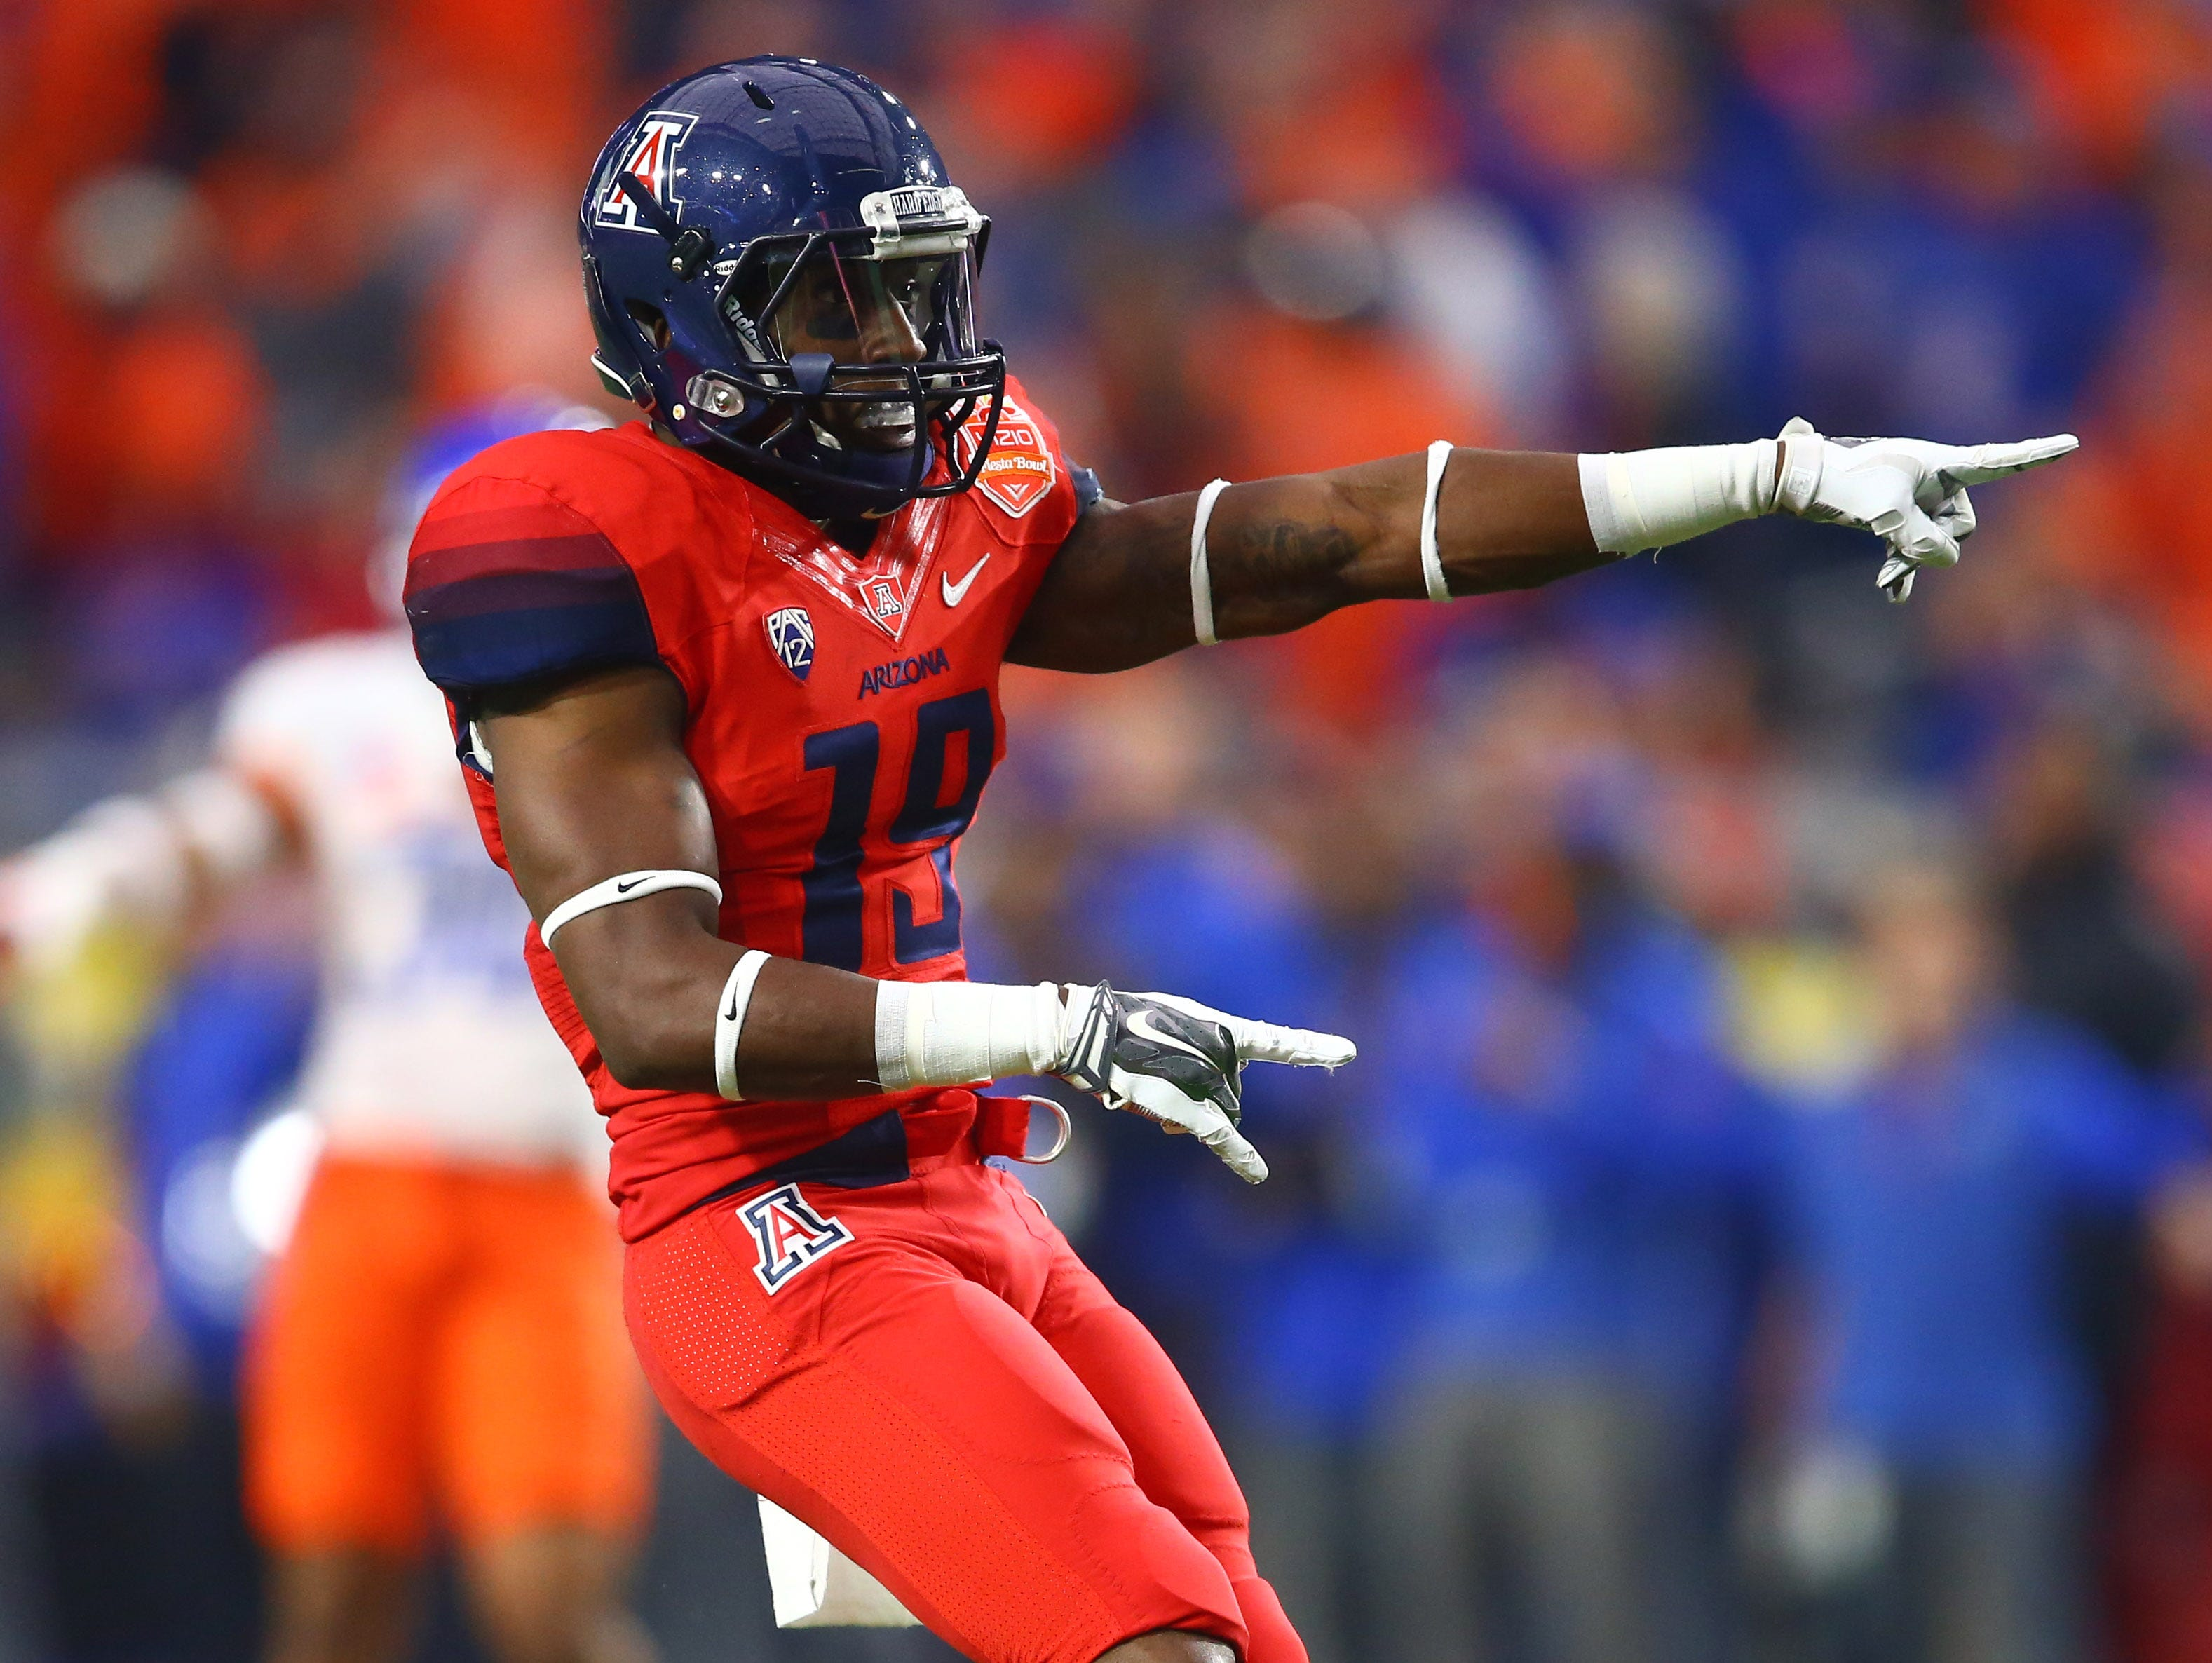 31 FBS teams have multiple former Arizona high school football players on their roster for the 2015 season. Arizona leads the pack with 31.